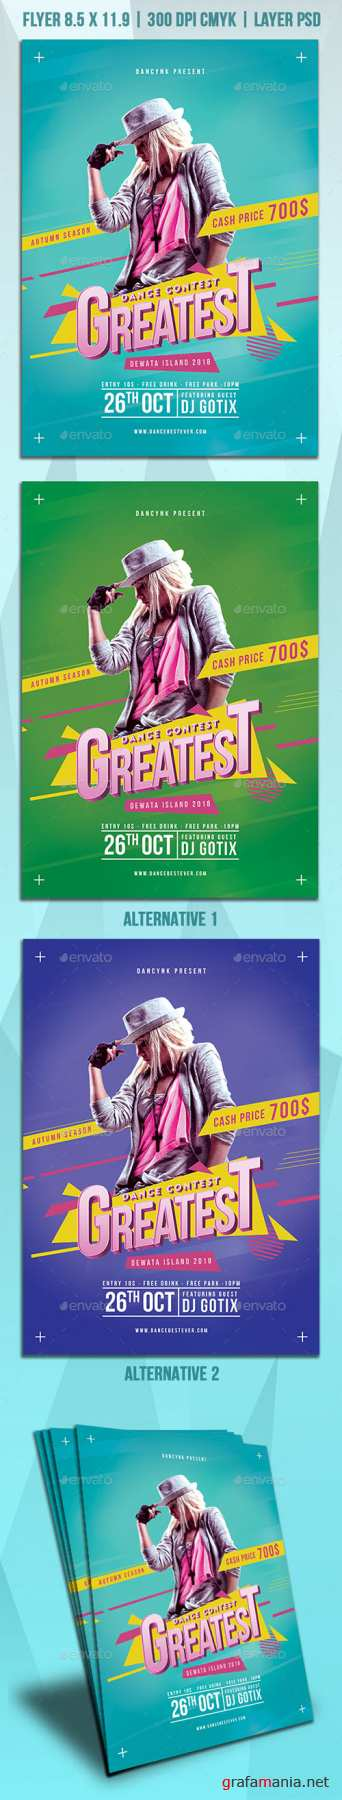 GraphicRiver - Dance Contest Flyer 22454117